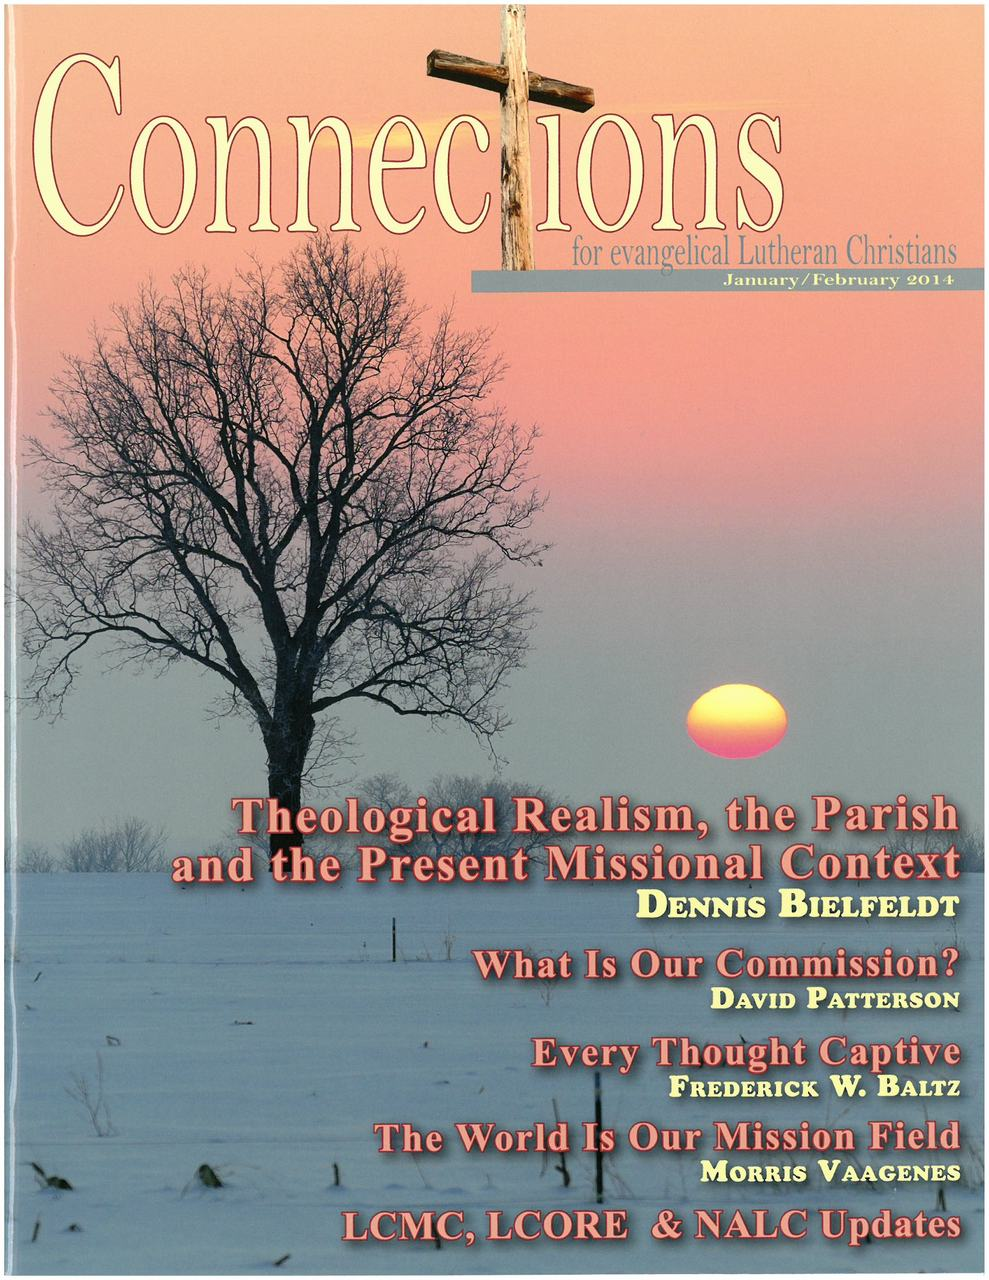 Connections (January/February 2014)